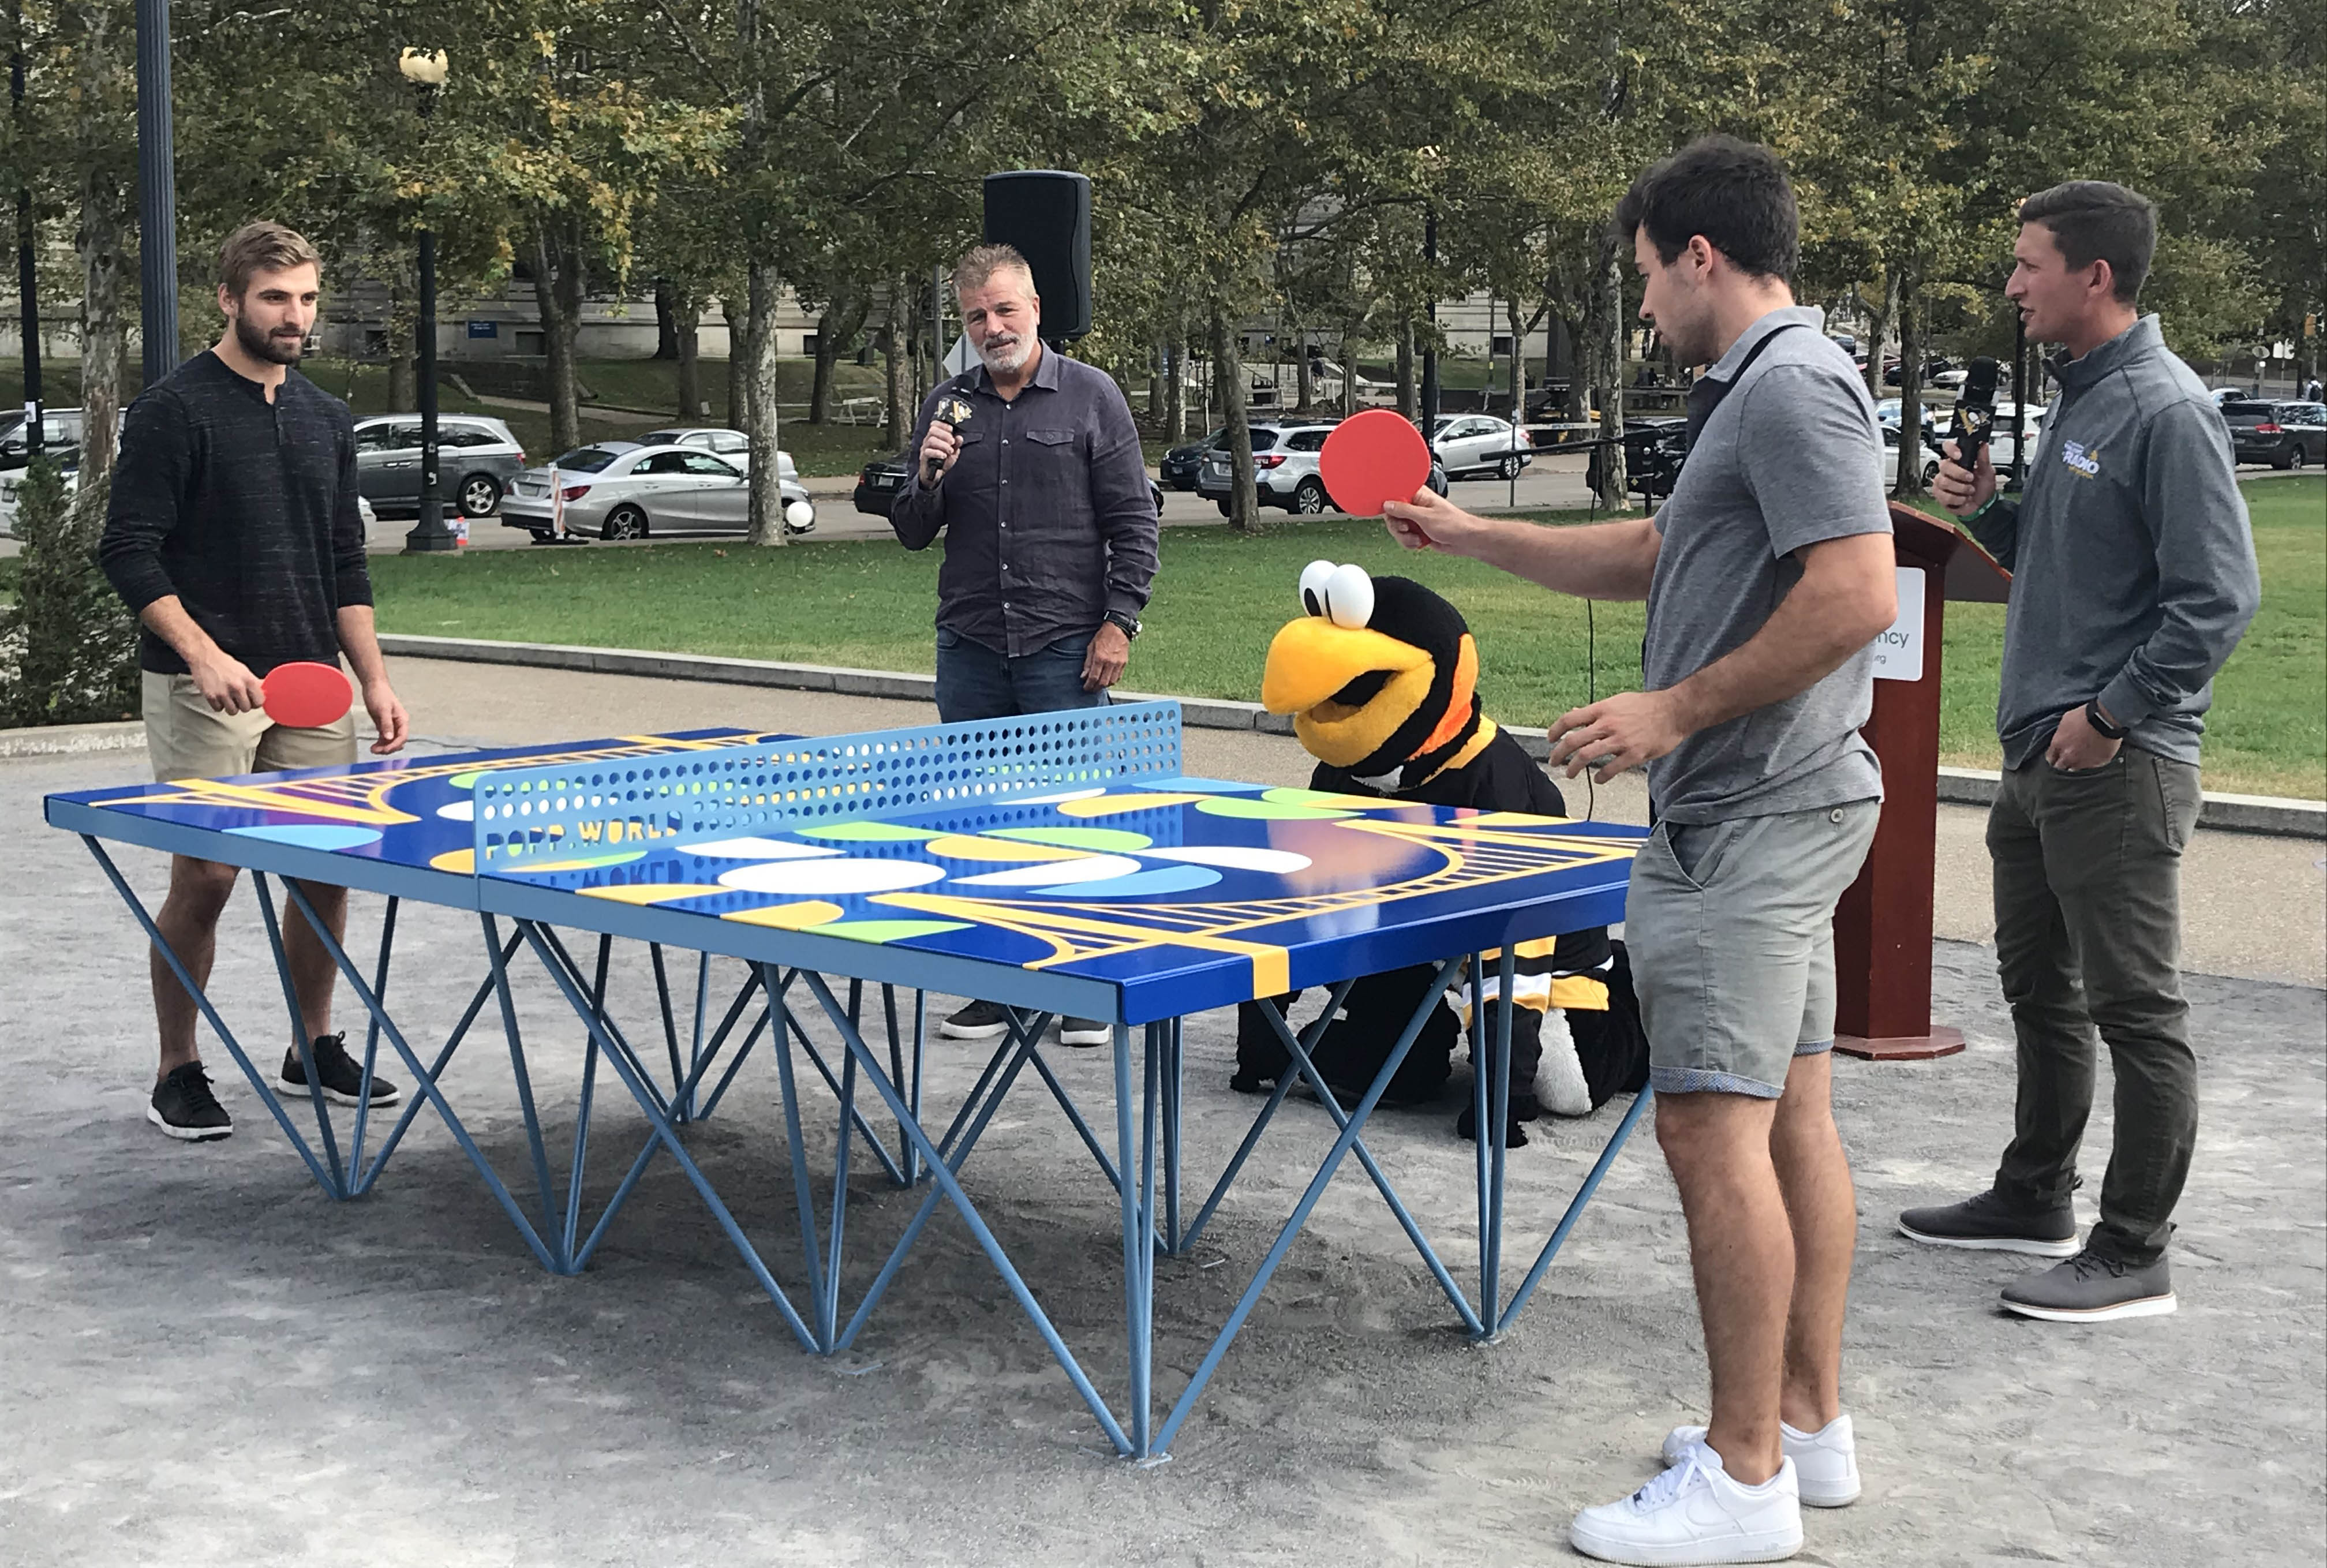 Penguins players at ping pong table